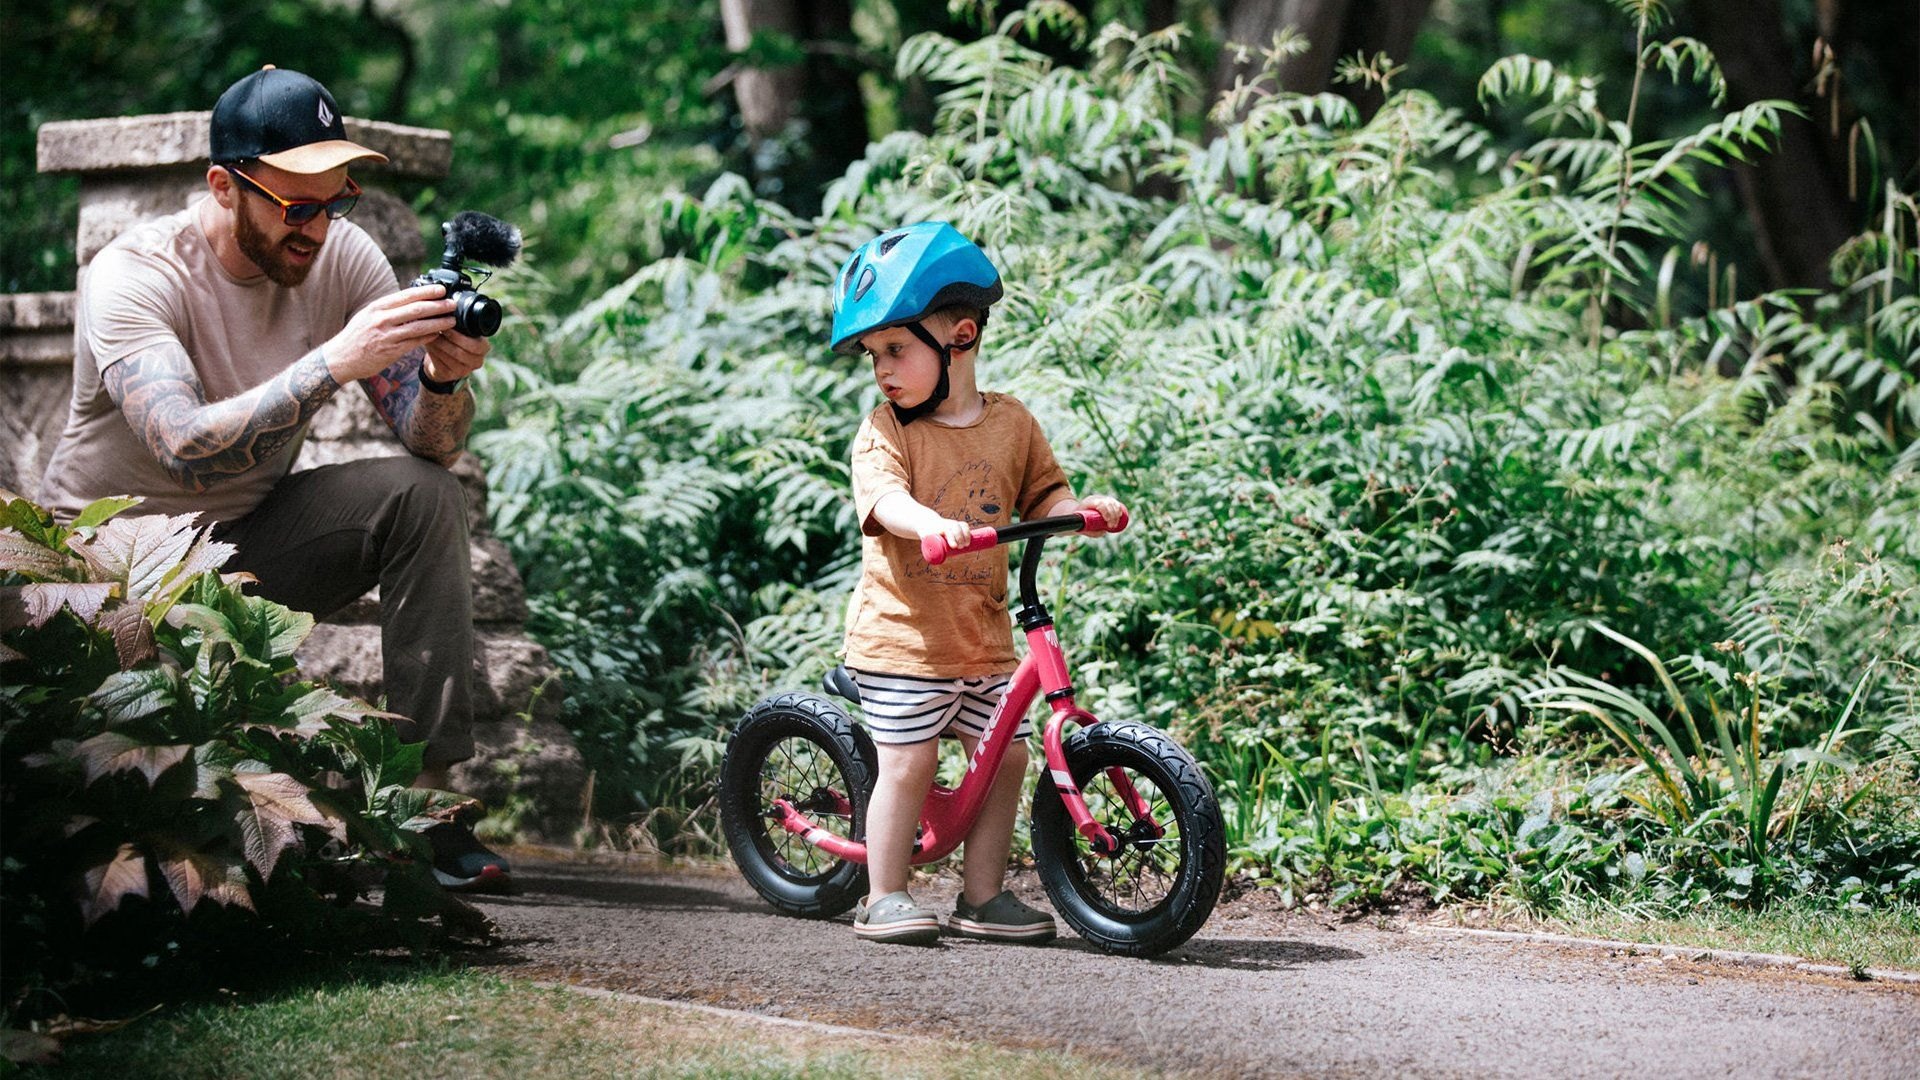 Stef Michalak crouching on a path with a Canon EOS M50 to film his son's first ride on a balance bike.